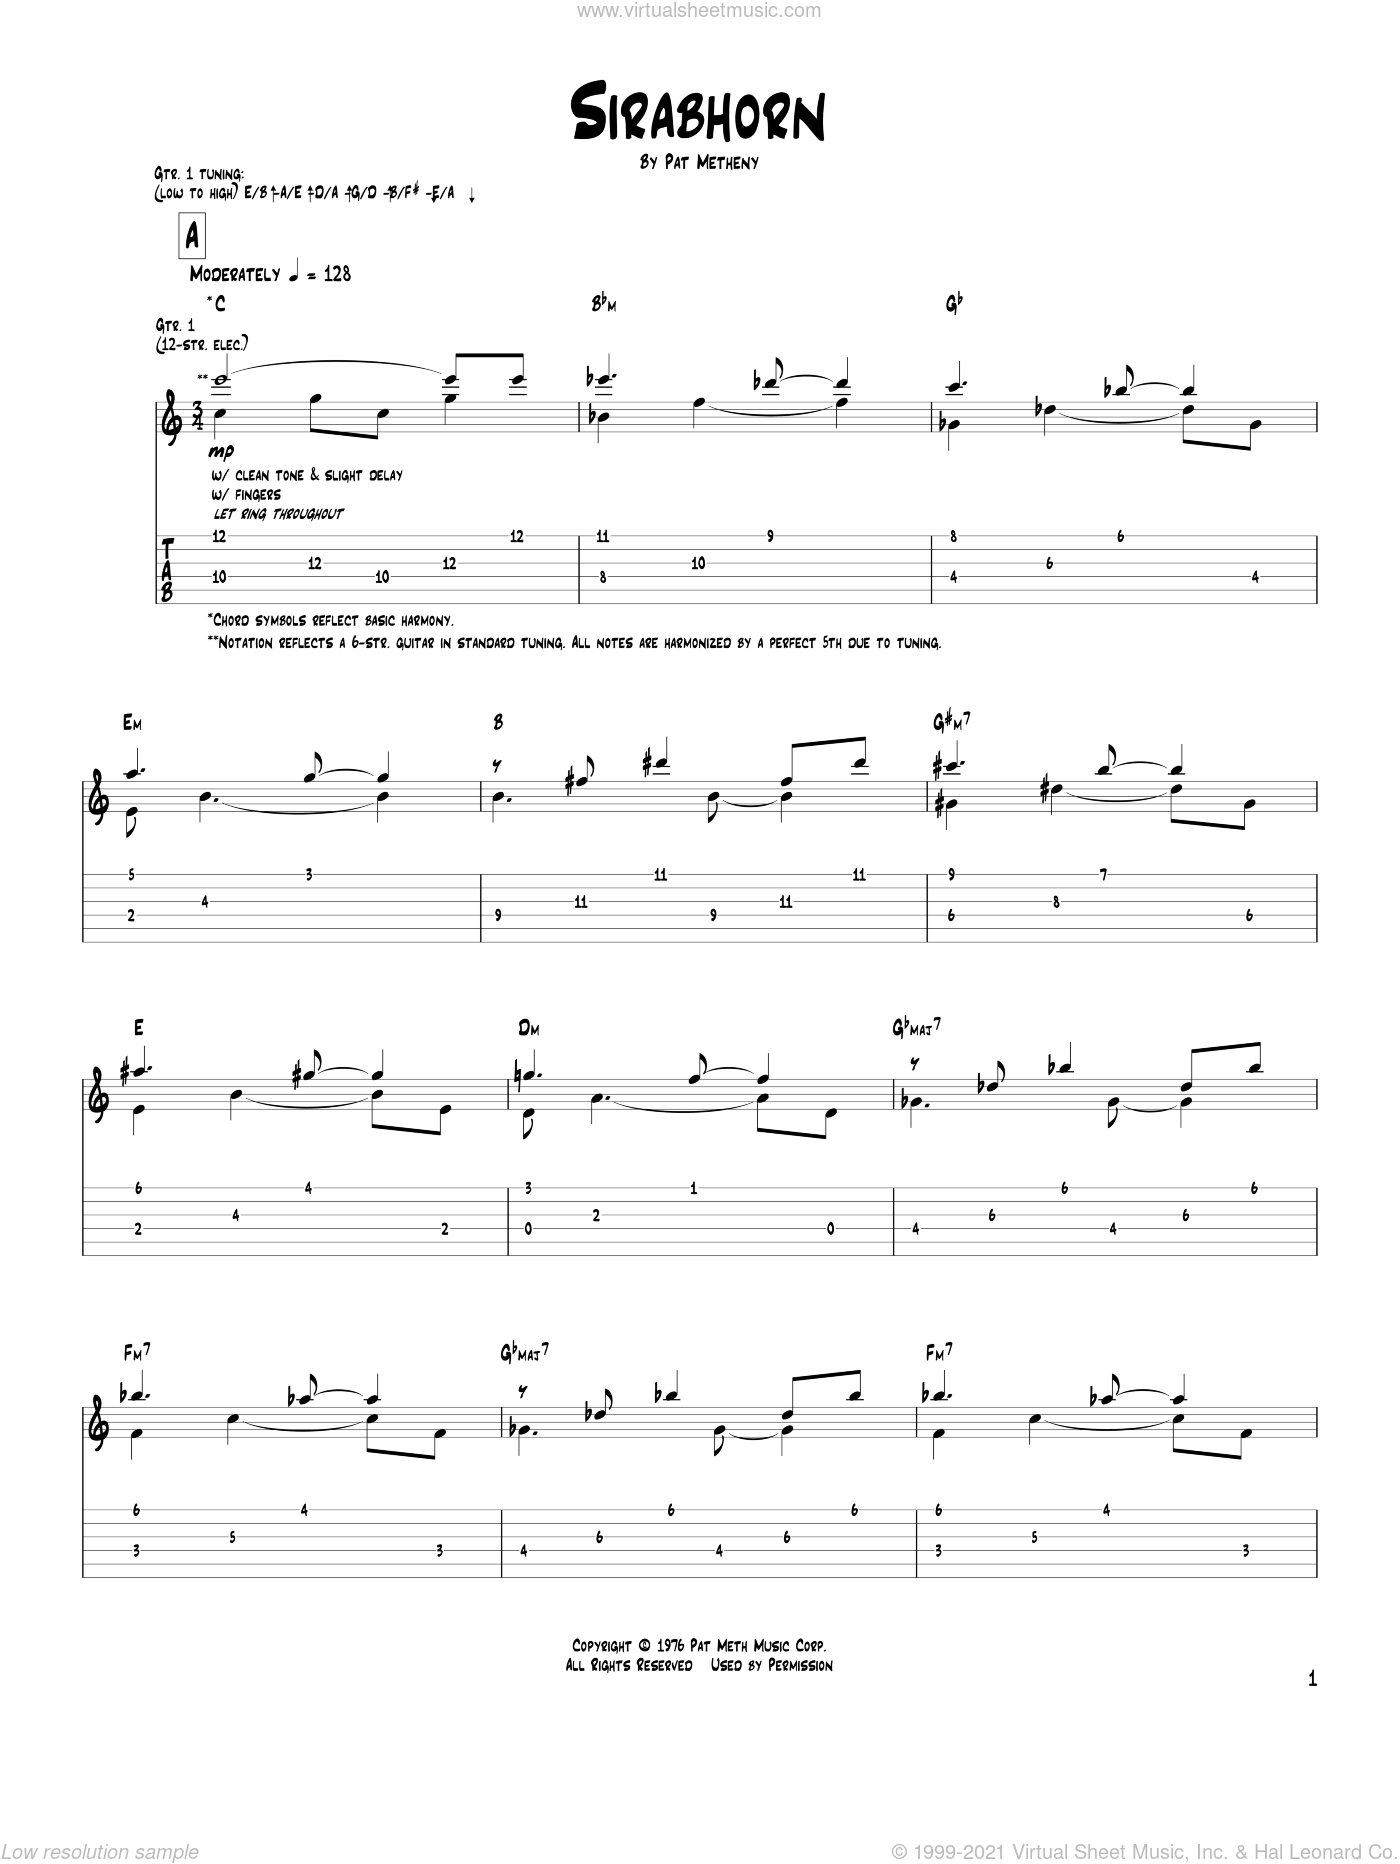 Sirabhorn sheet music for guitar (tablature) by Pat Metheny